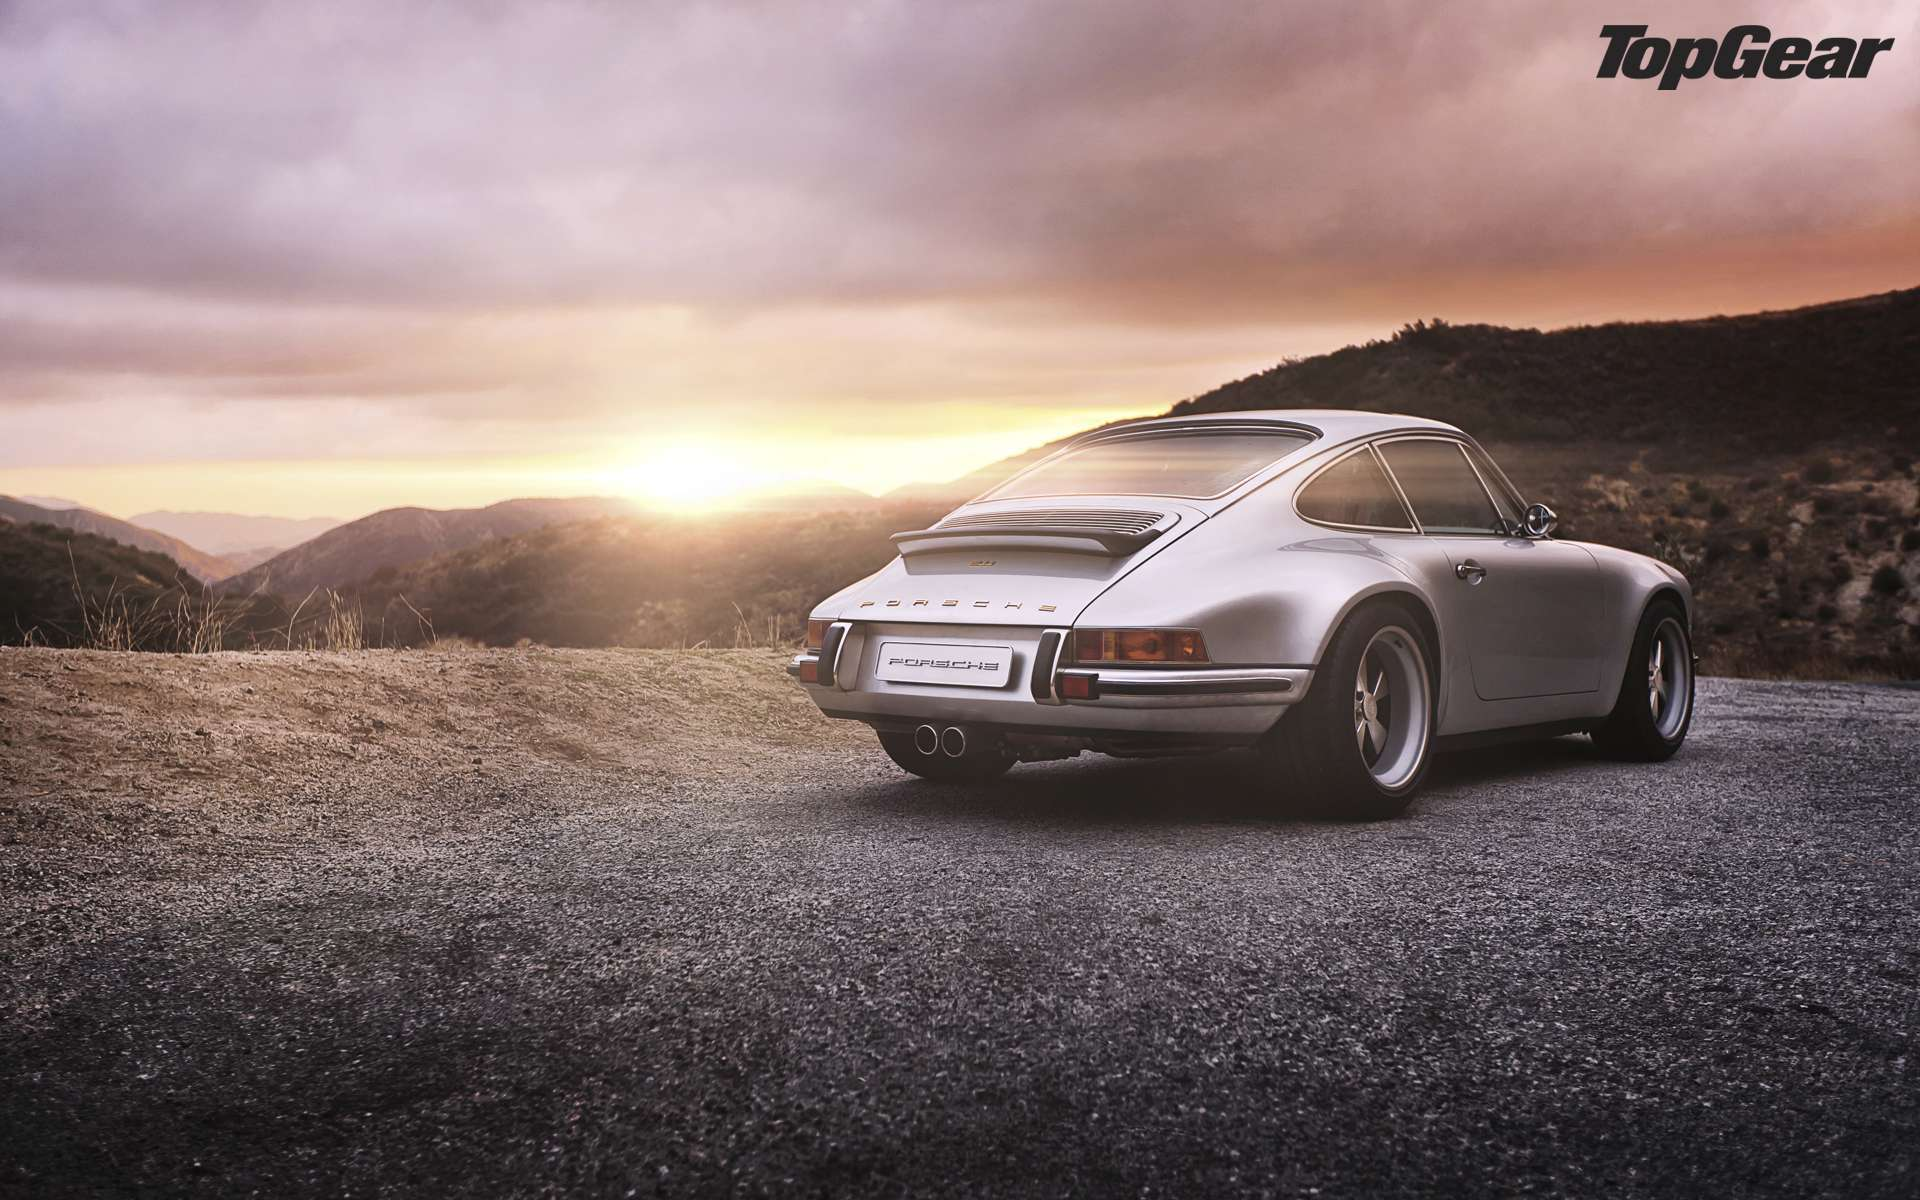 porsche 911 hd wallpaper hd wallpapersjpg - Porsche 911 Wallpaper Widescreen